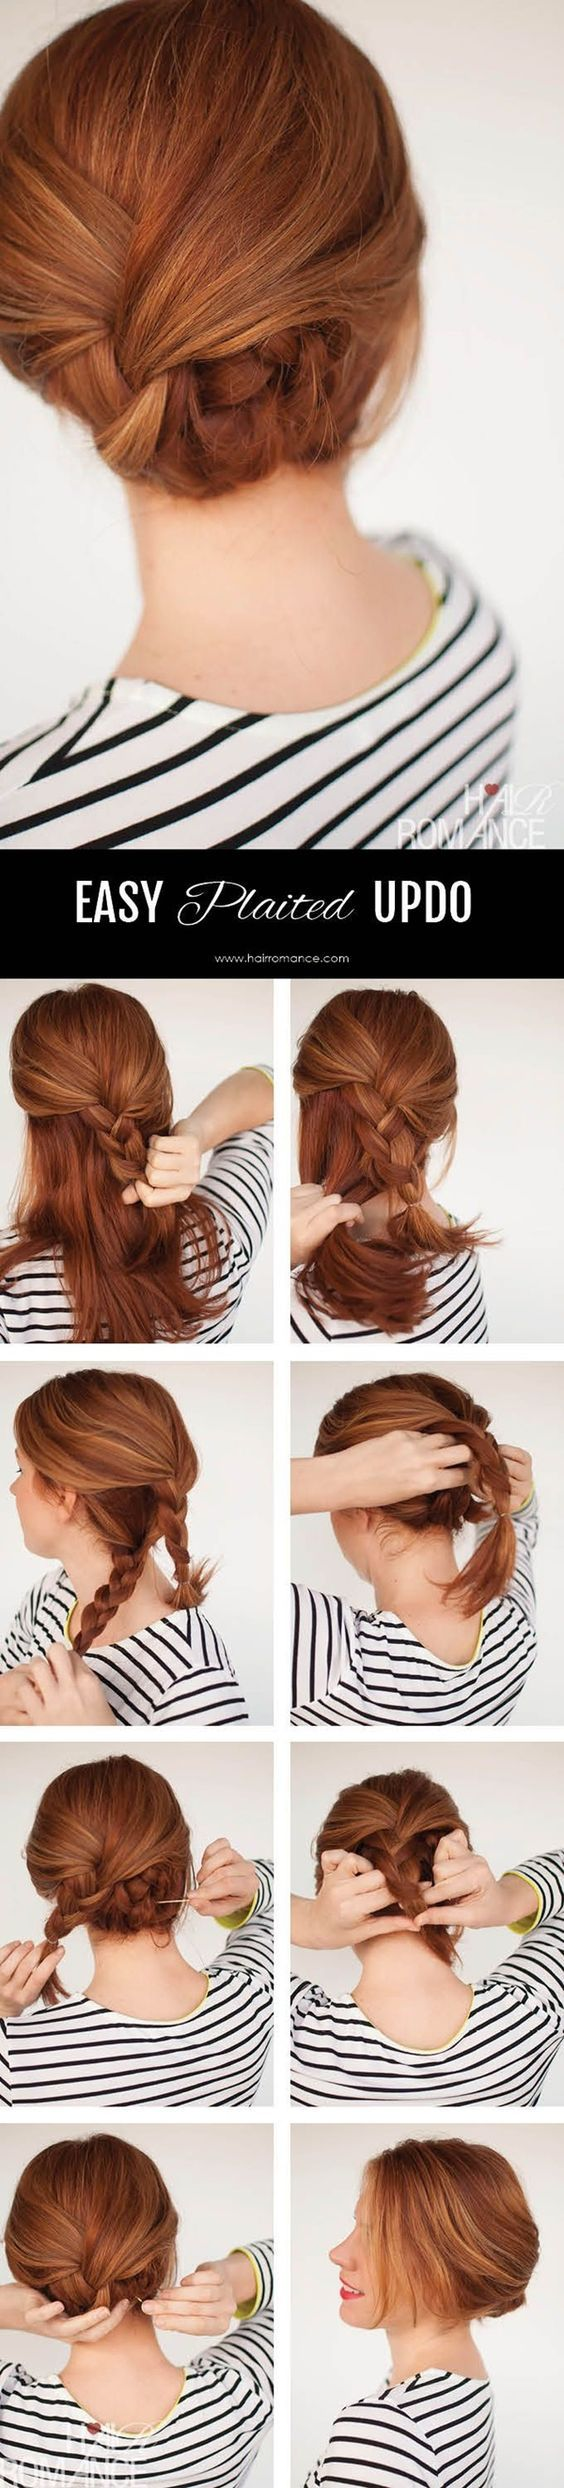 DIY Hairstyle // Simple yet classy hairstyle ideas.